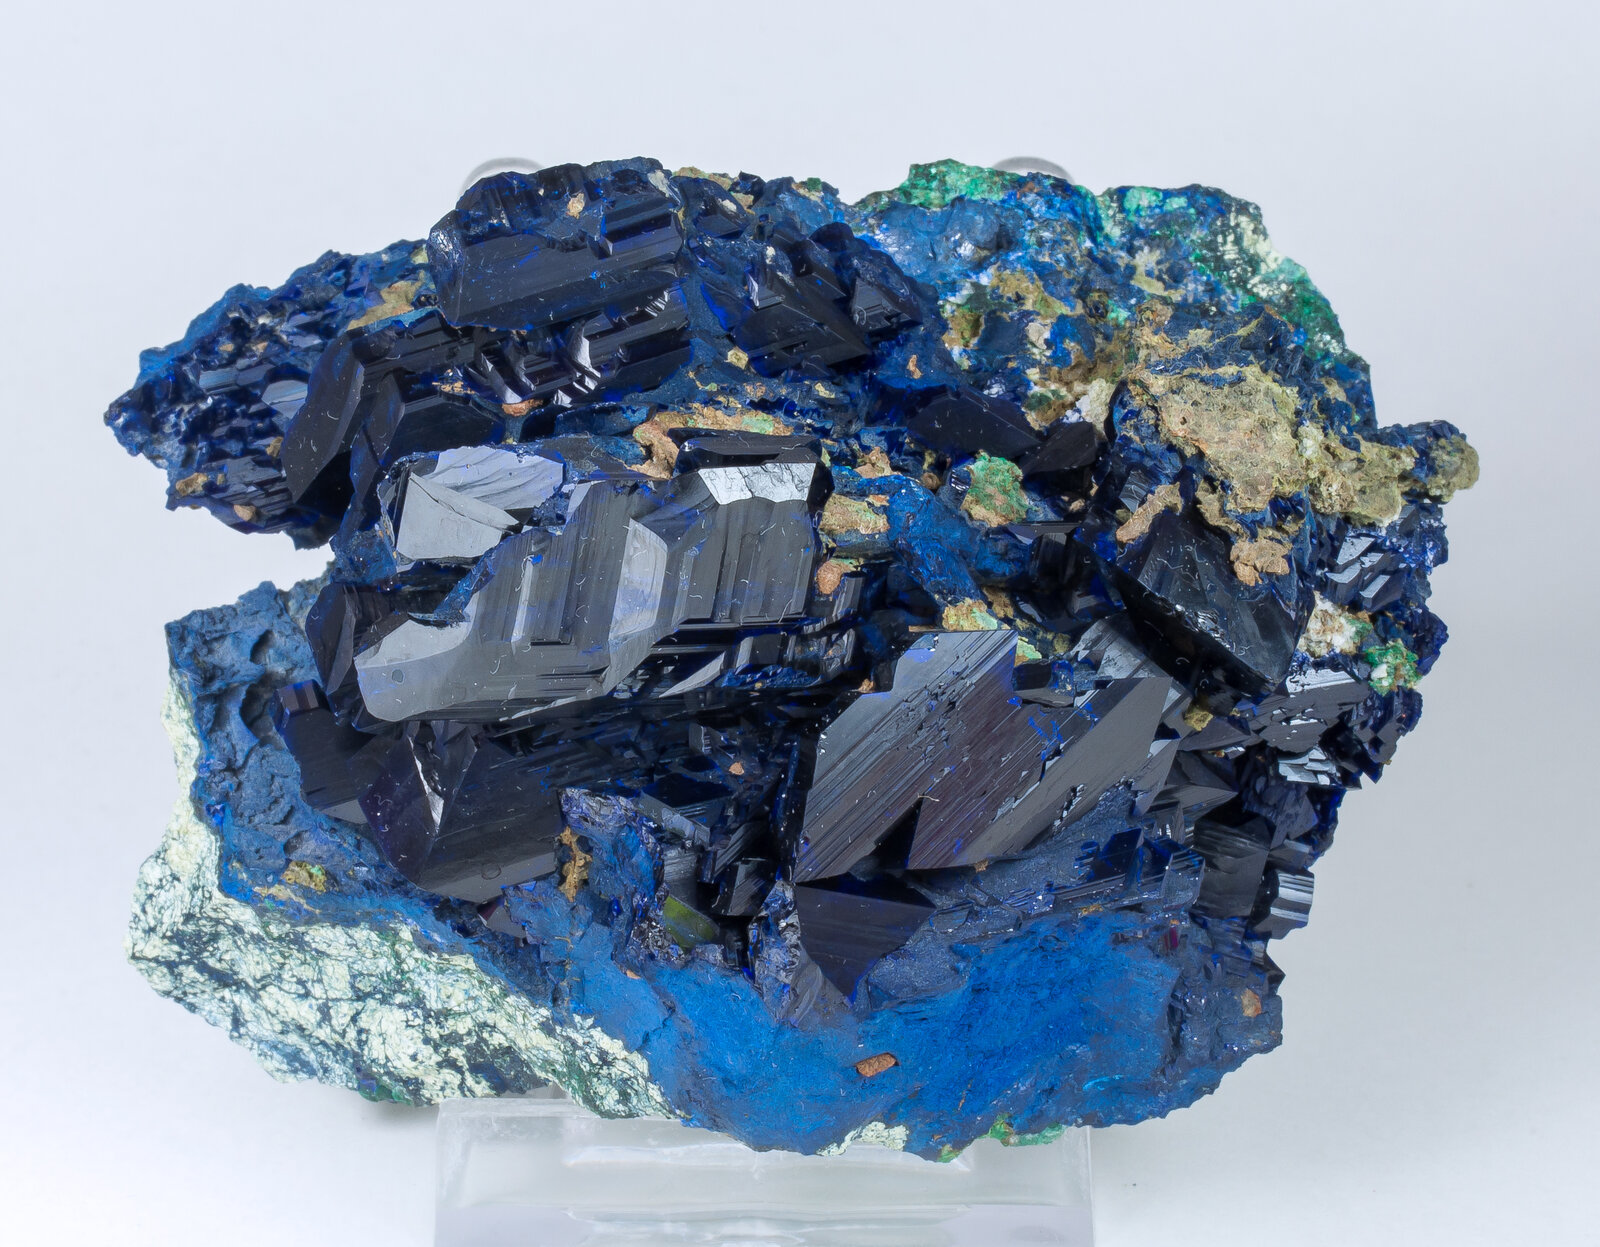 specimens/s_imagesAM9/Azurite-NV36AM9f.jpg